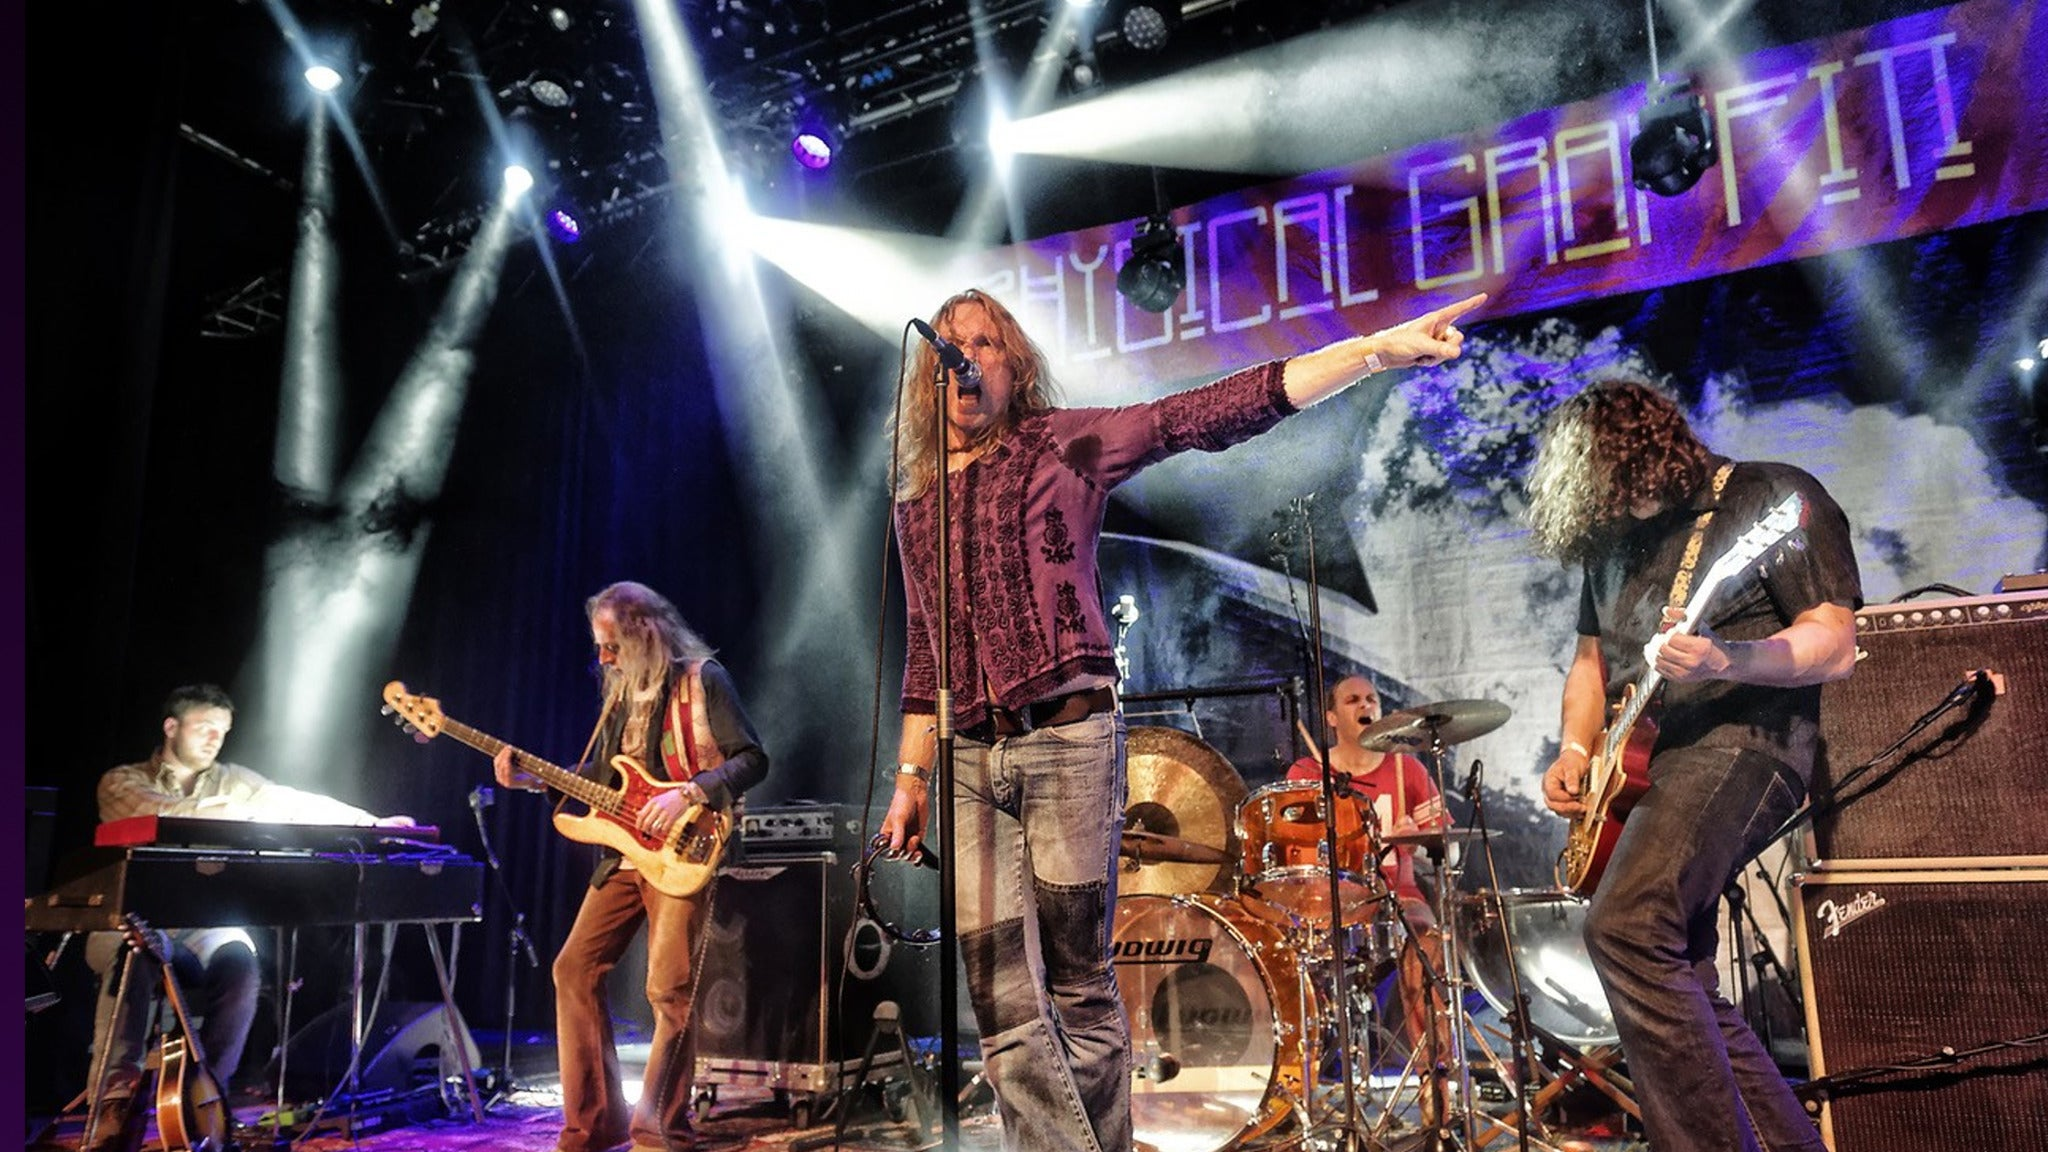 Physical Graffiti - a tribute to Led Zeppelin